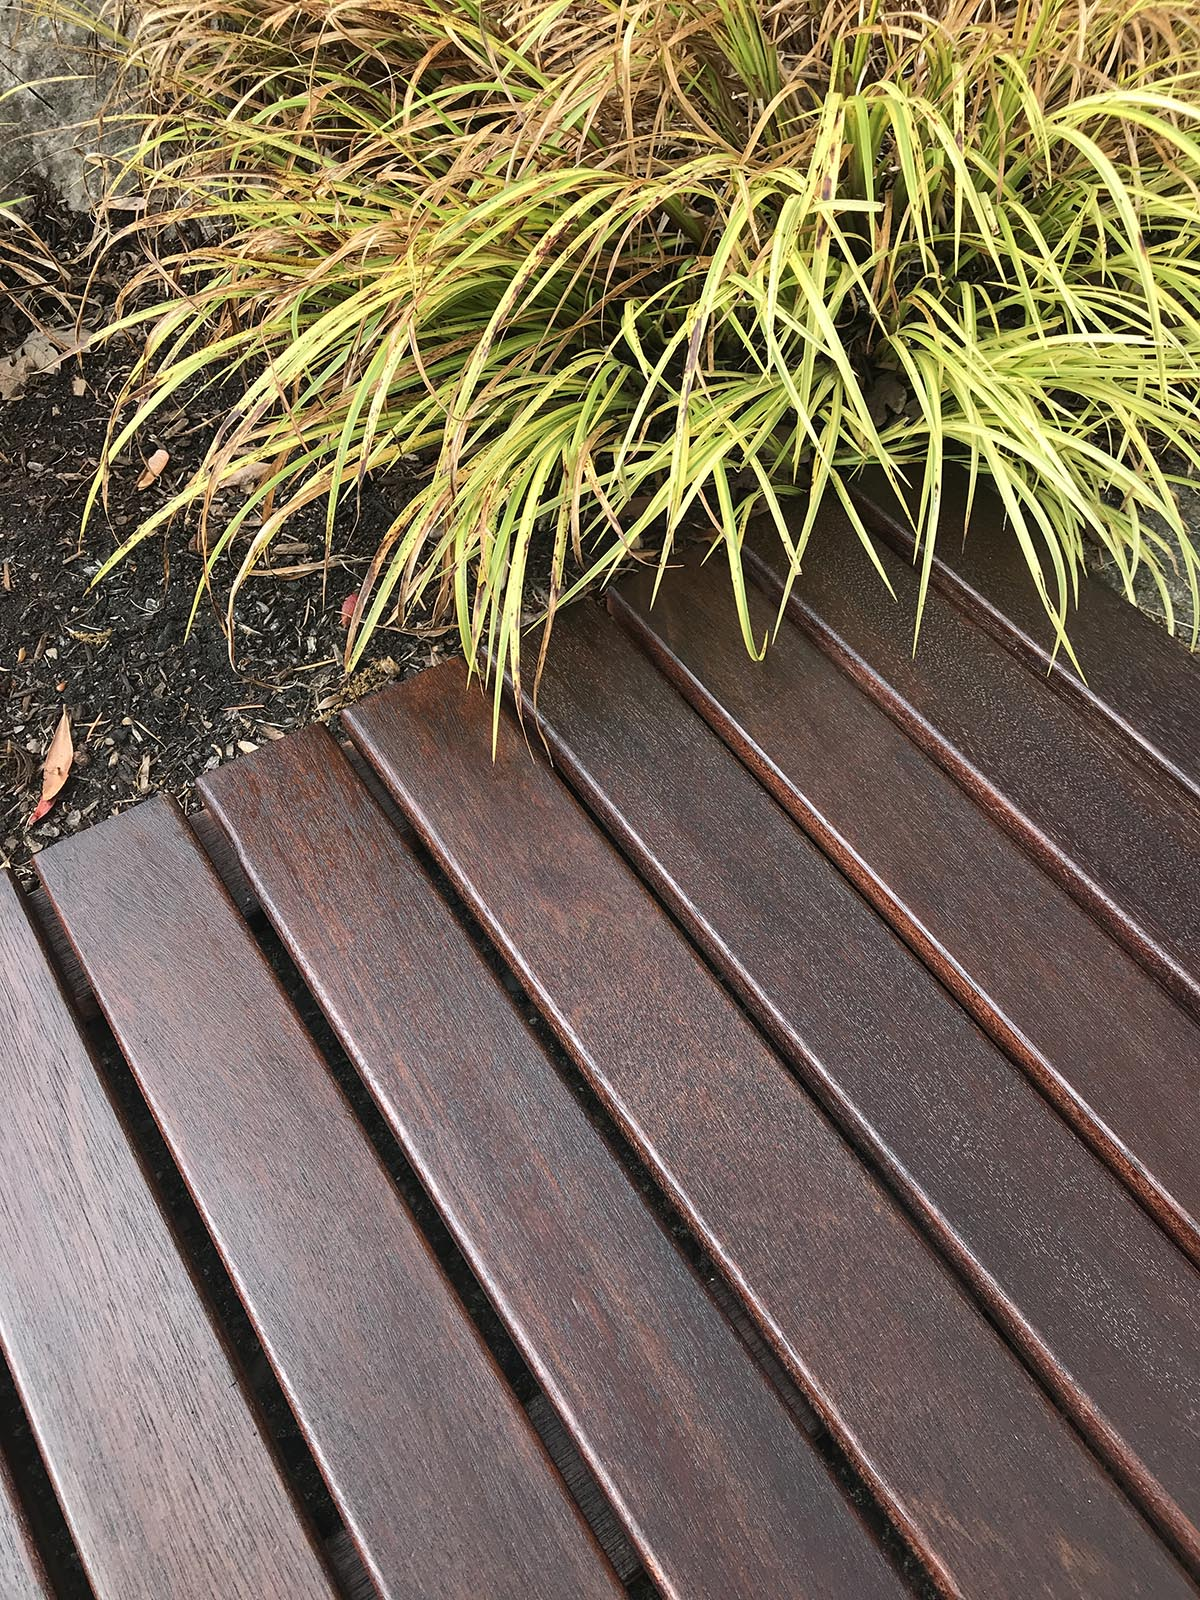 Patio Deck Tiles Recycled Rubber: Interlocking Wood Deck Tiles